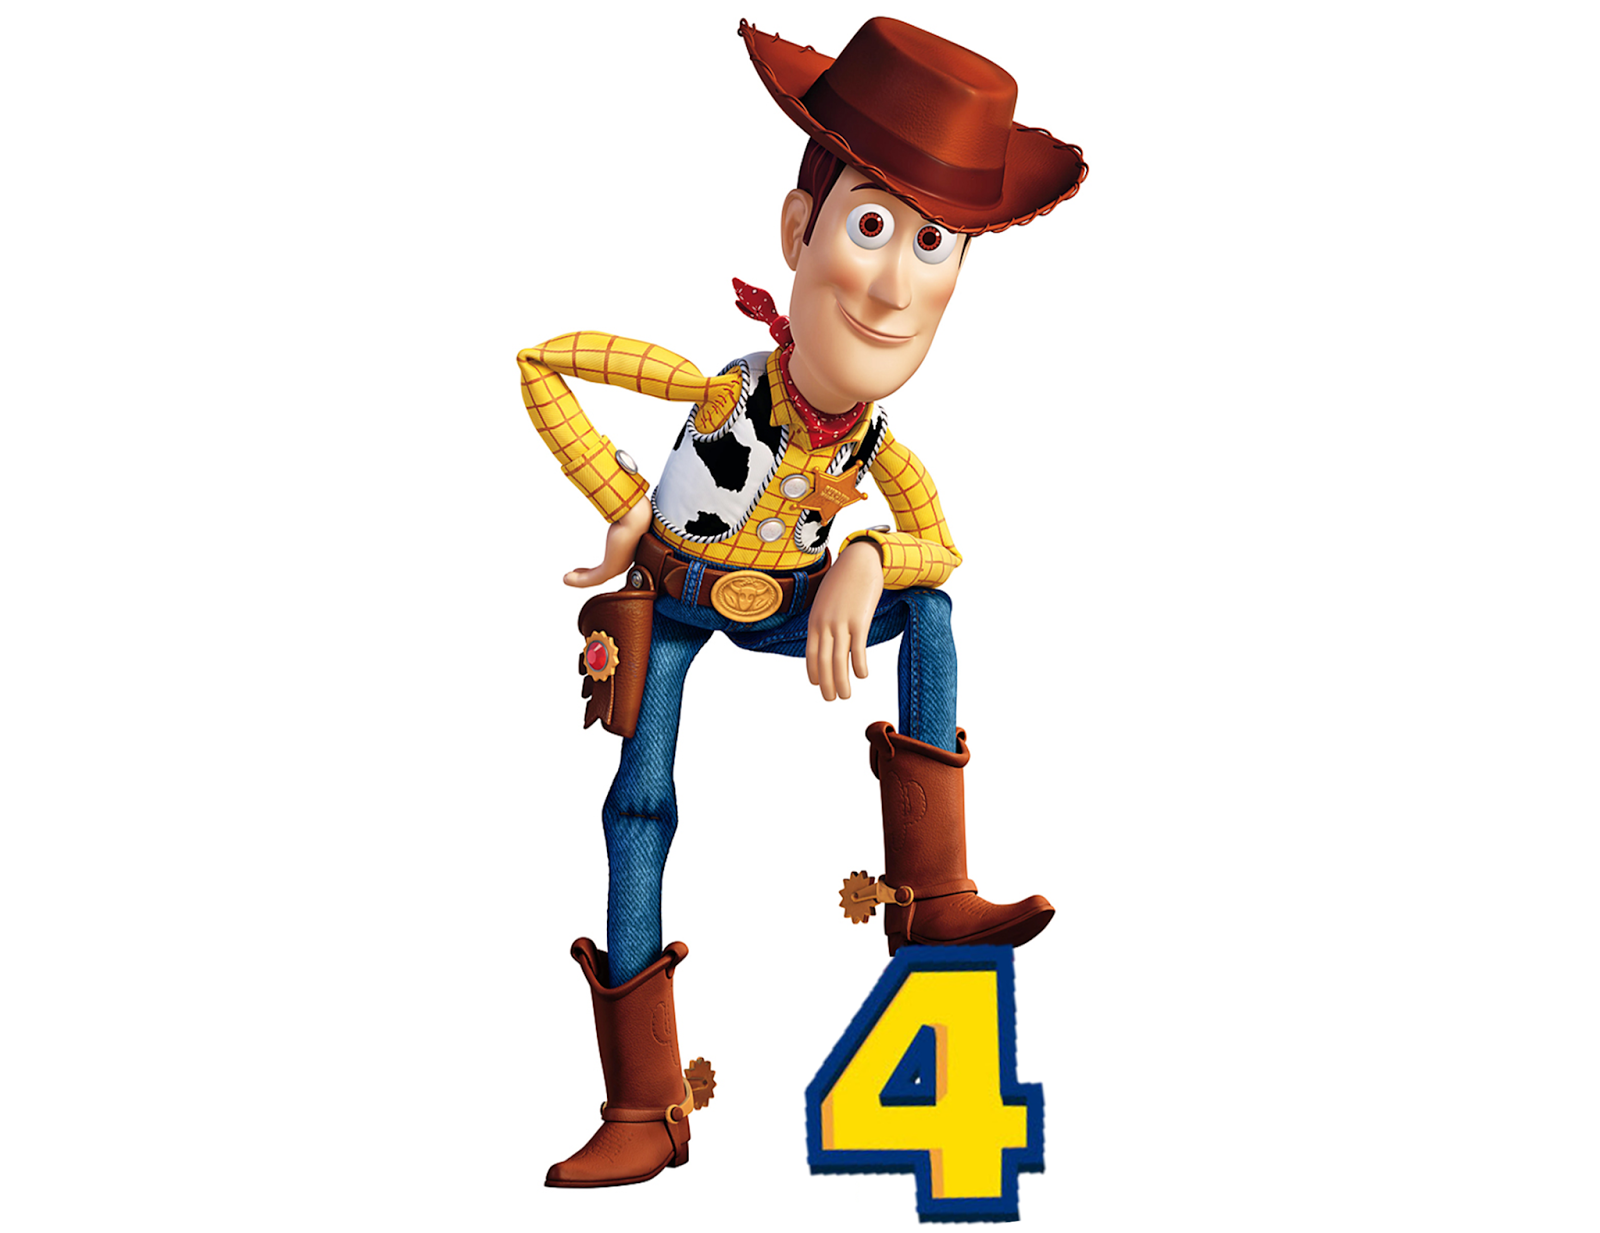 Toy Story 4 : Lincoln high school statesman toy story